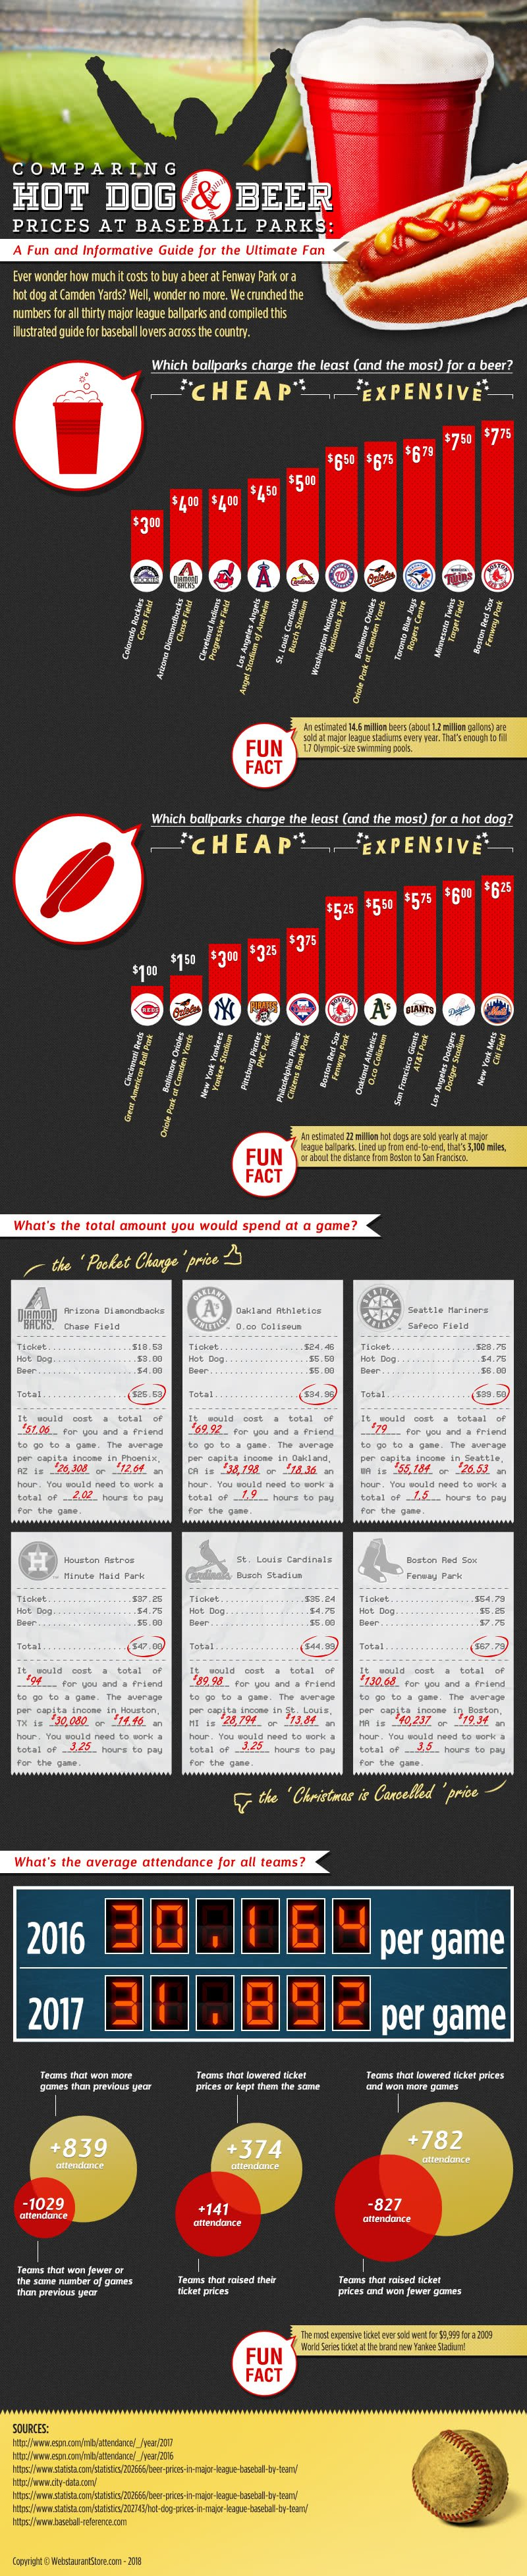 Comparing Hot Dog and Beer Prices at Baseball Parks